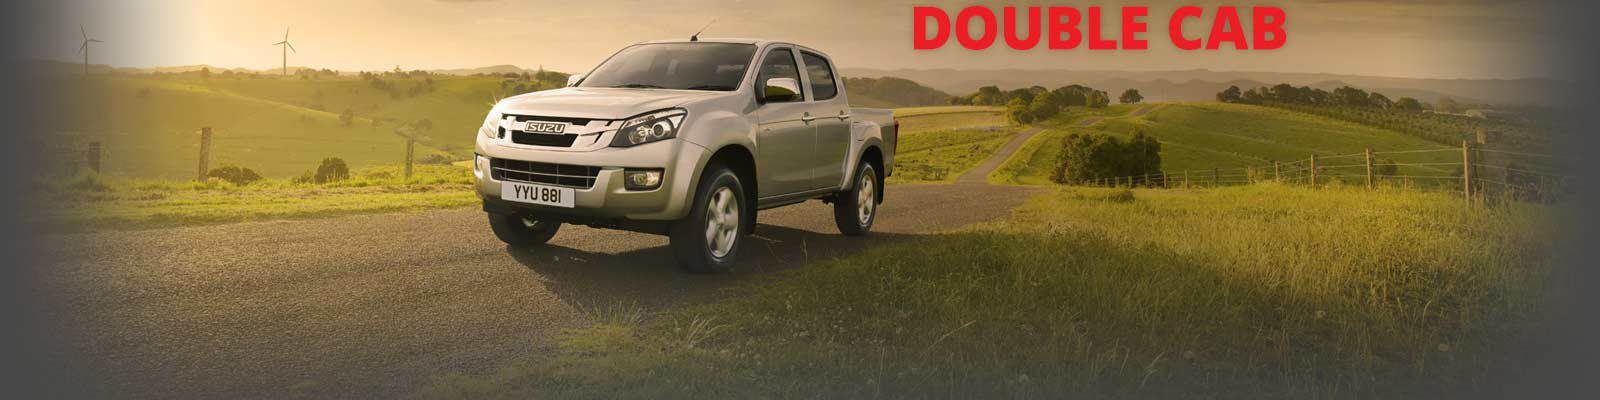 Double Cab 2012 on